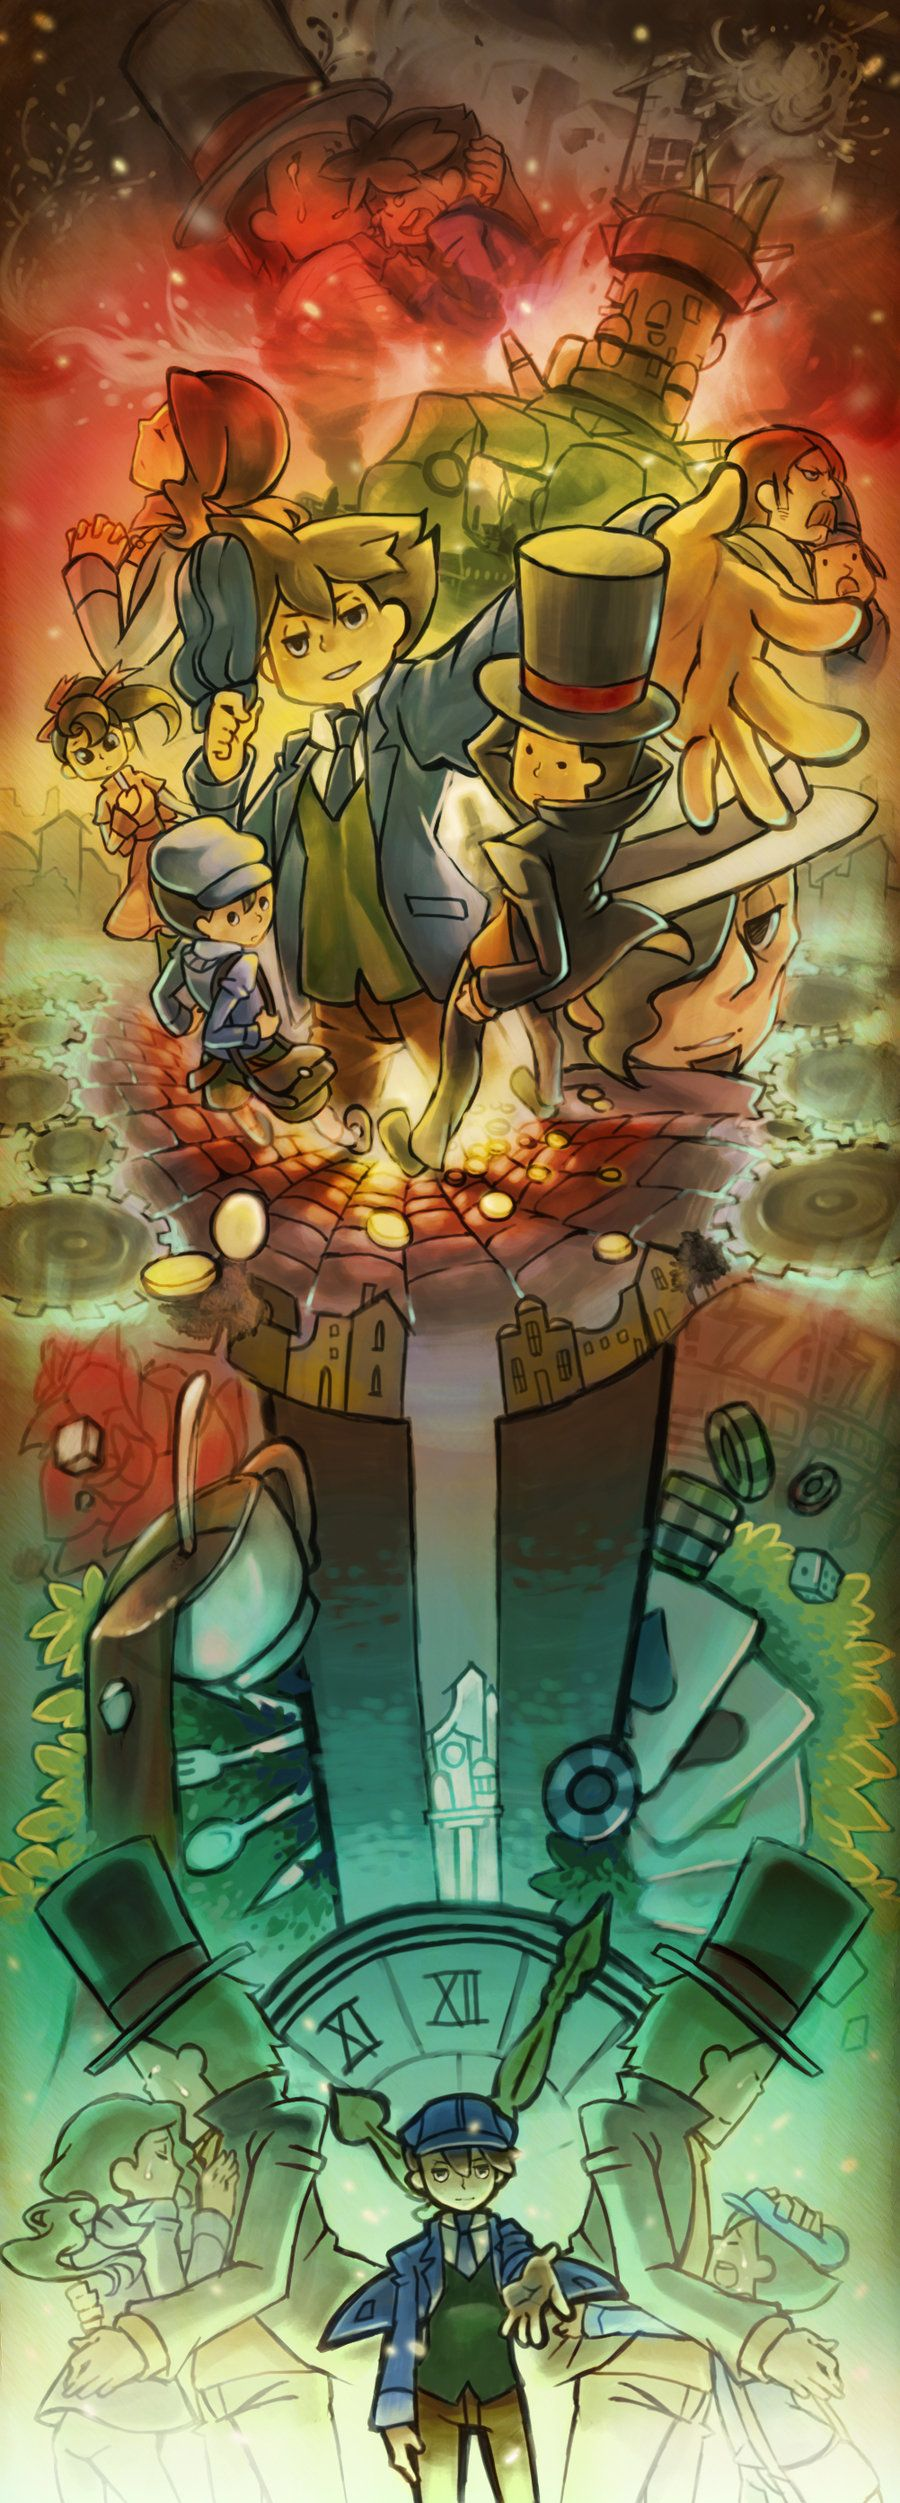 Professor Layton And The Unwound Future A Game With A Very